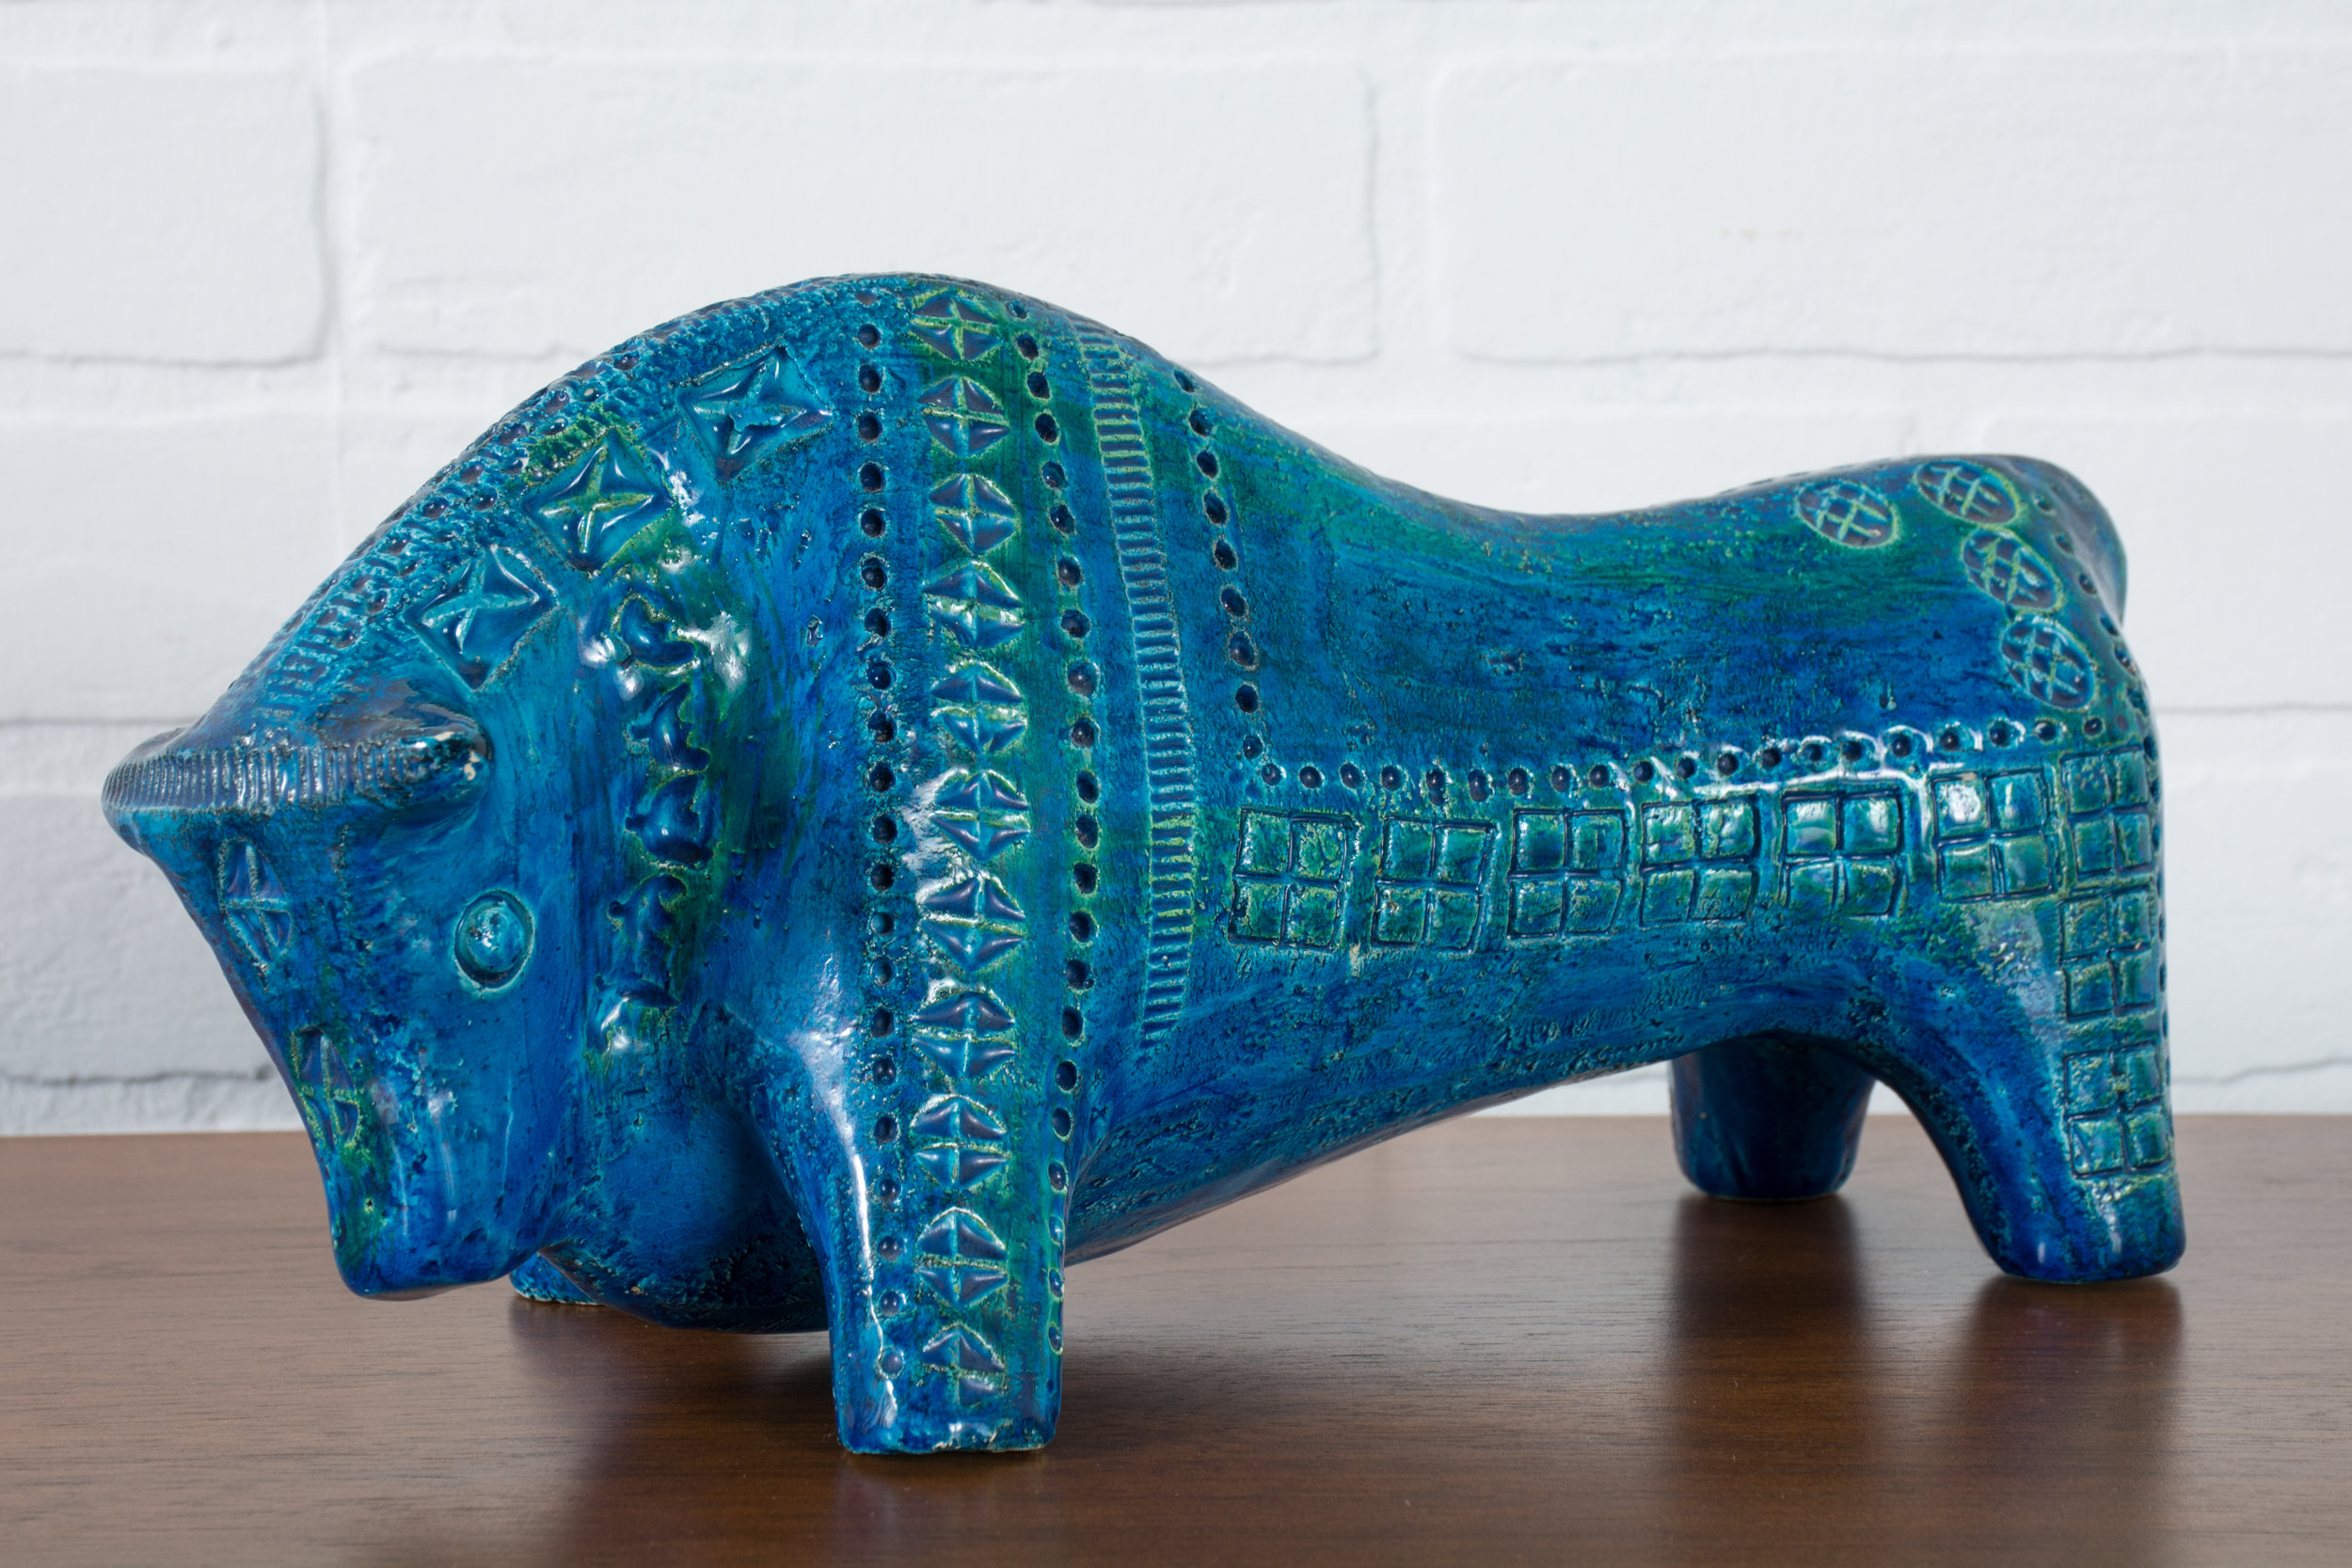 Vintage Mid-Century 'Rimini Blu' Ceramic Bull Sculpture by Bitossi for Raymor